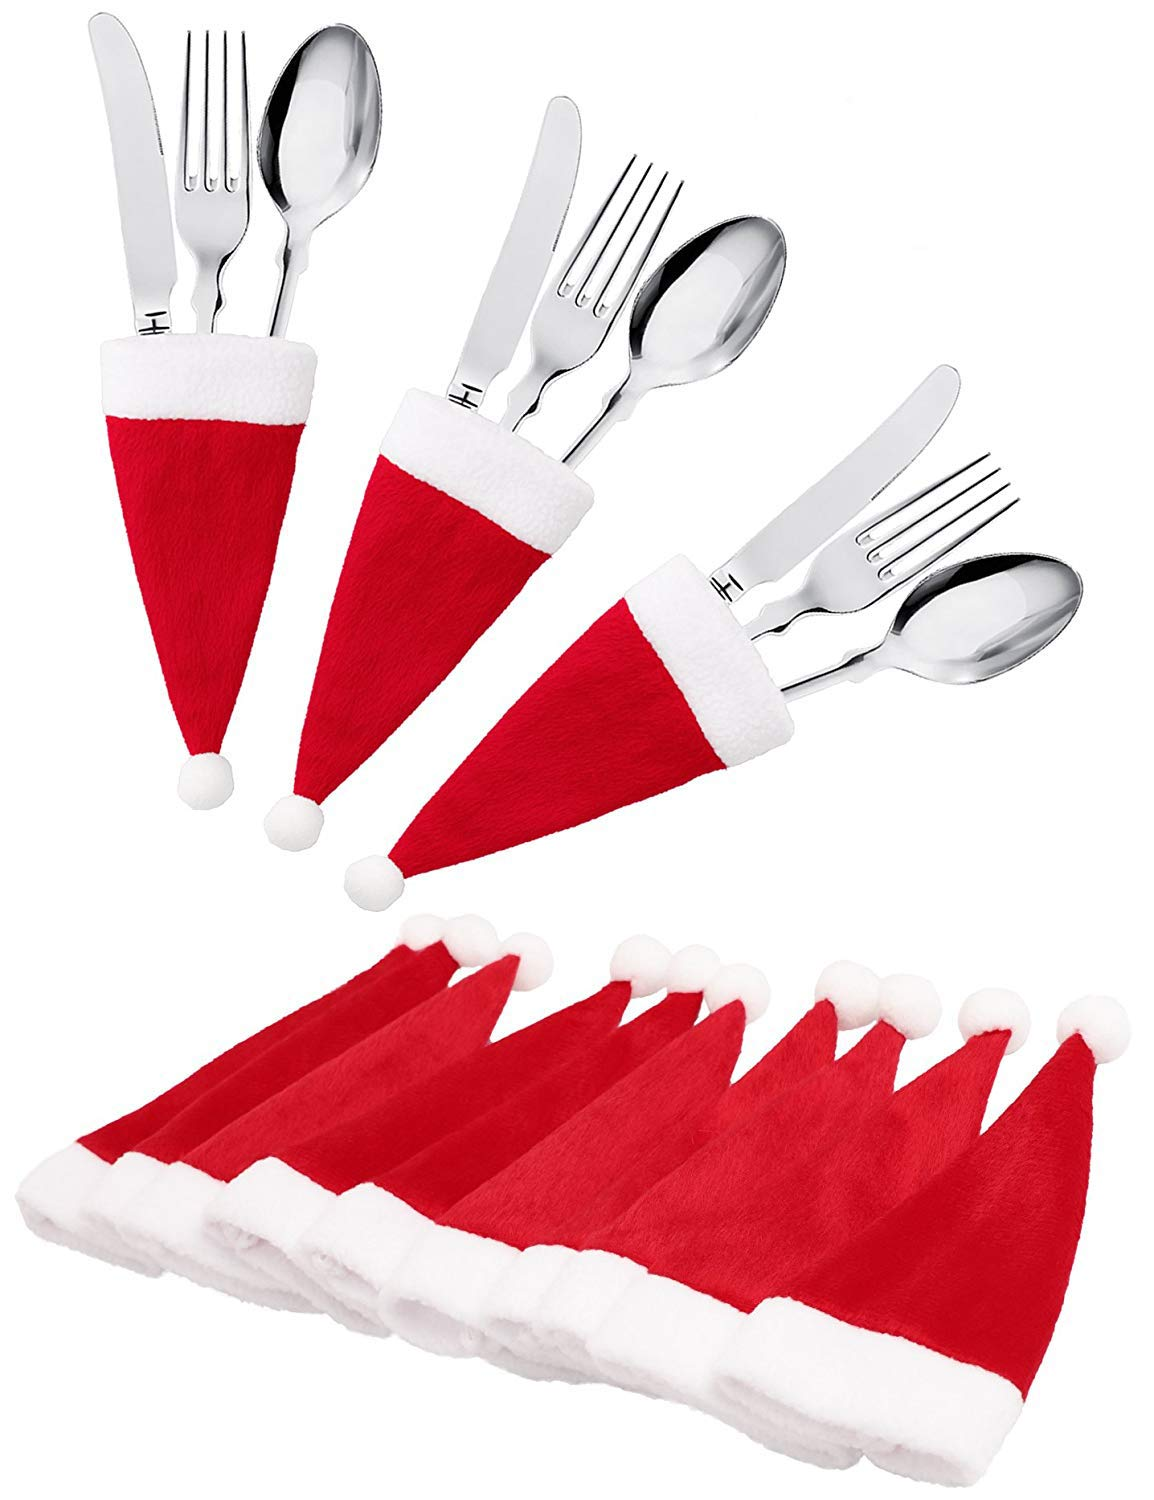 jollylife 20Ct Christmas Santa Hats Silverware Holders - Xmas Party Dinner Table Dinnerware Decorations Supplies